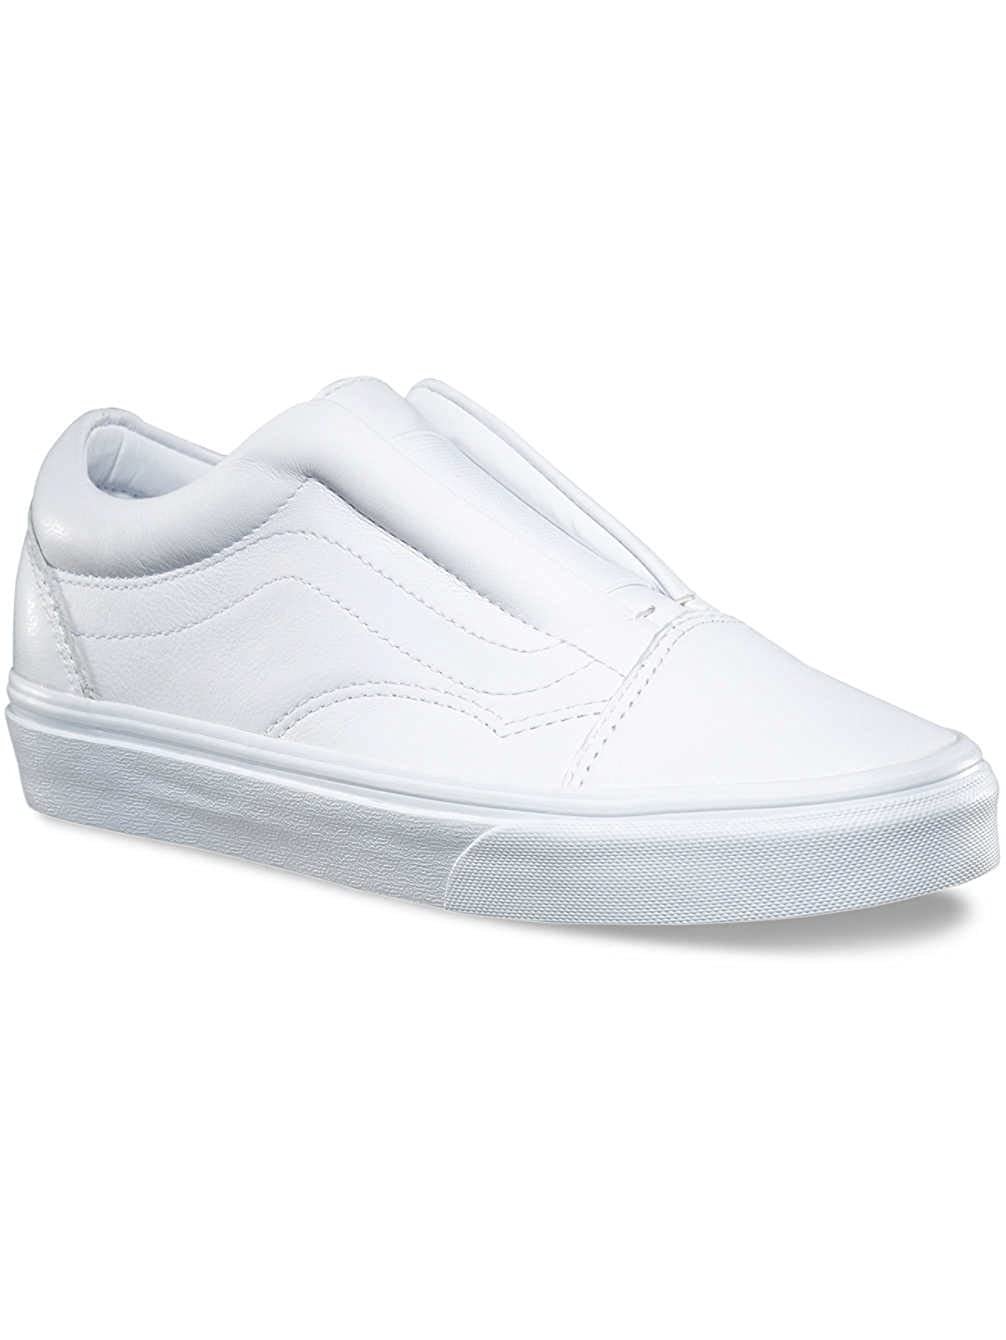 808e4f8783a5 Vans Women s Ua Old Skool Laceless Dx True White Leather 6.5 Women   5 Men  M US  Buy Online at Low Prices in India - Amazon.in